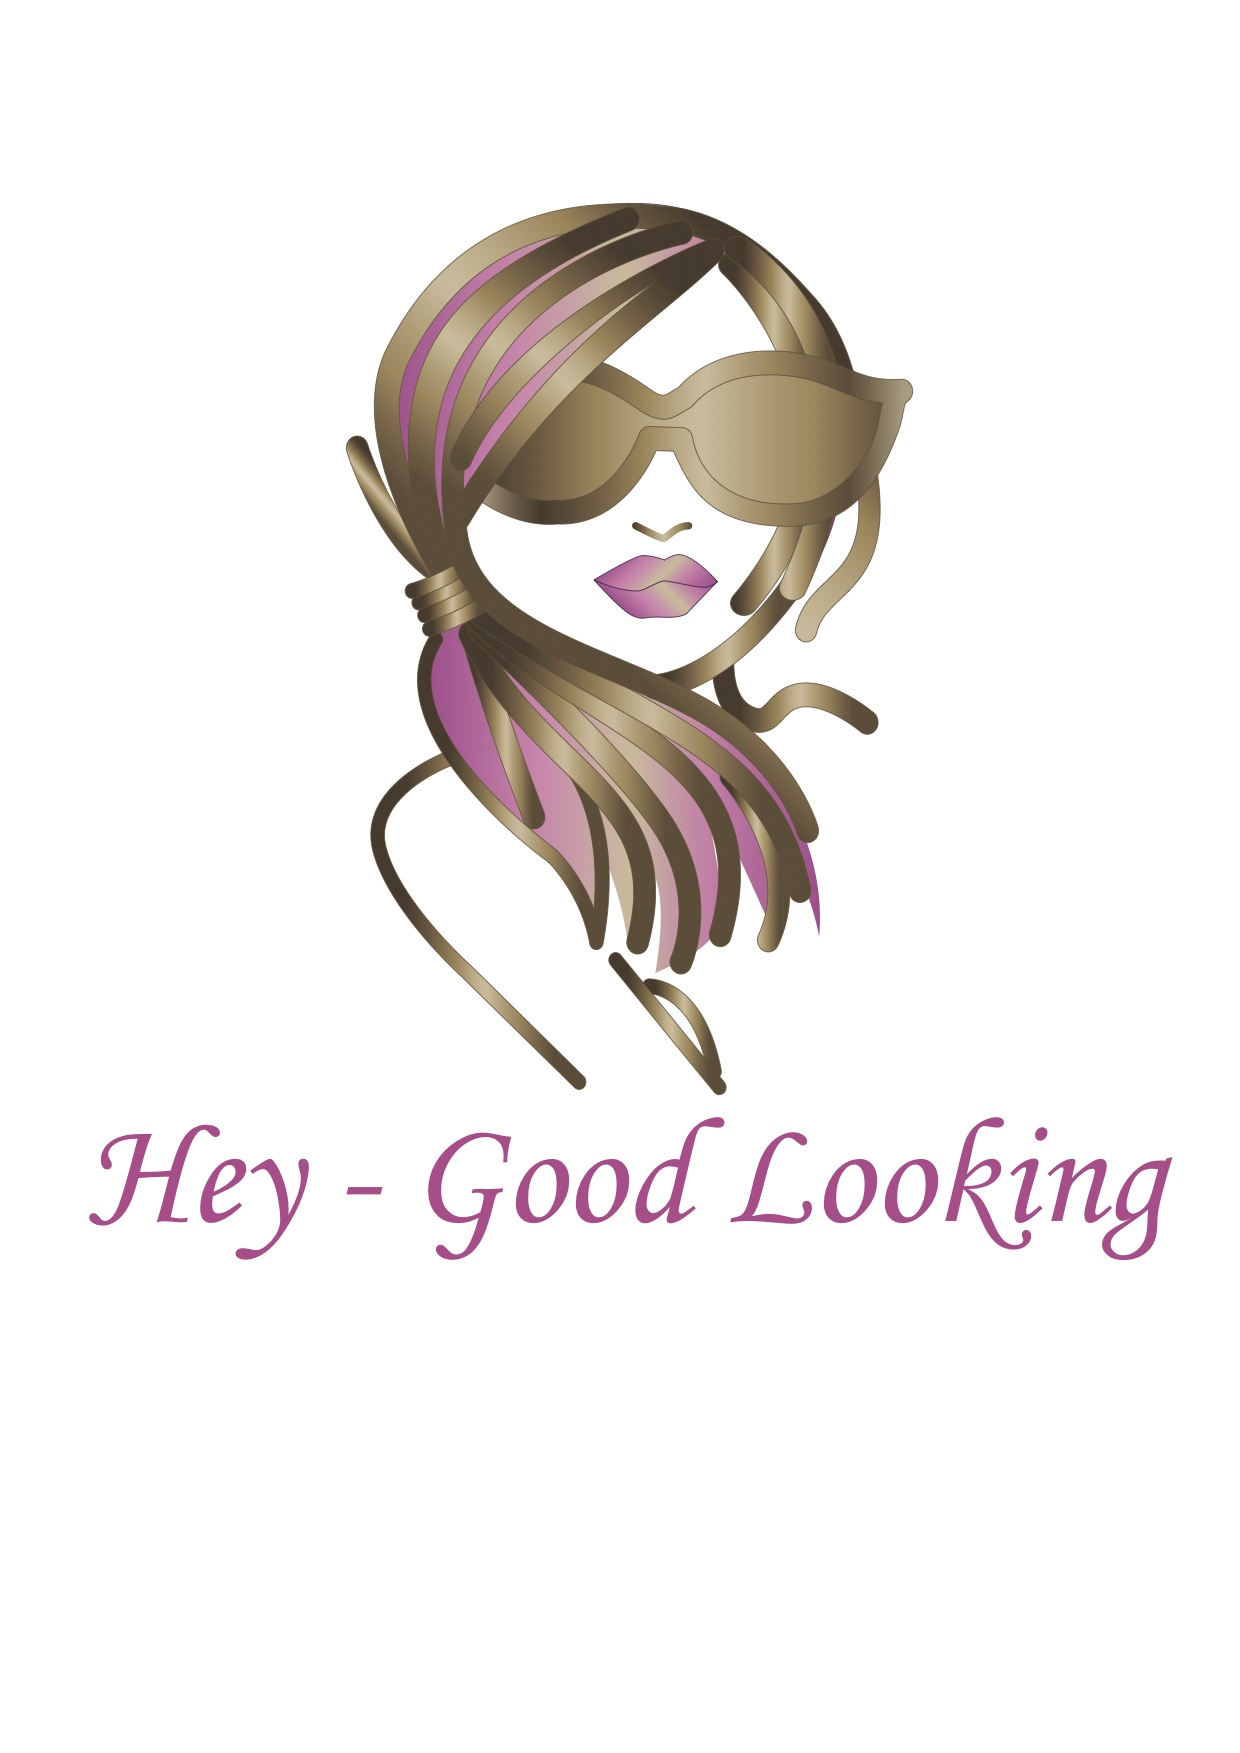 Hey - Good Looking Hair and Beauty Logo and Images